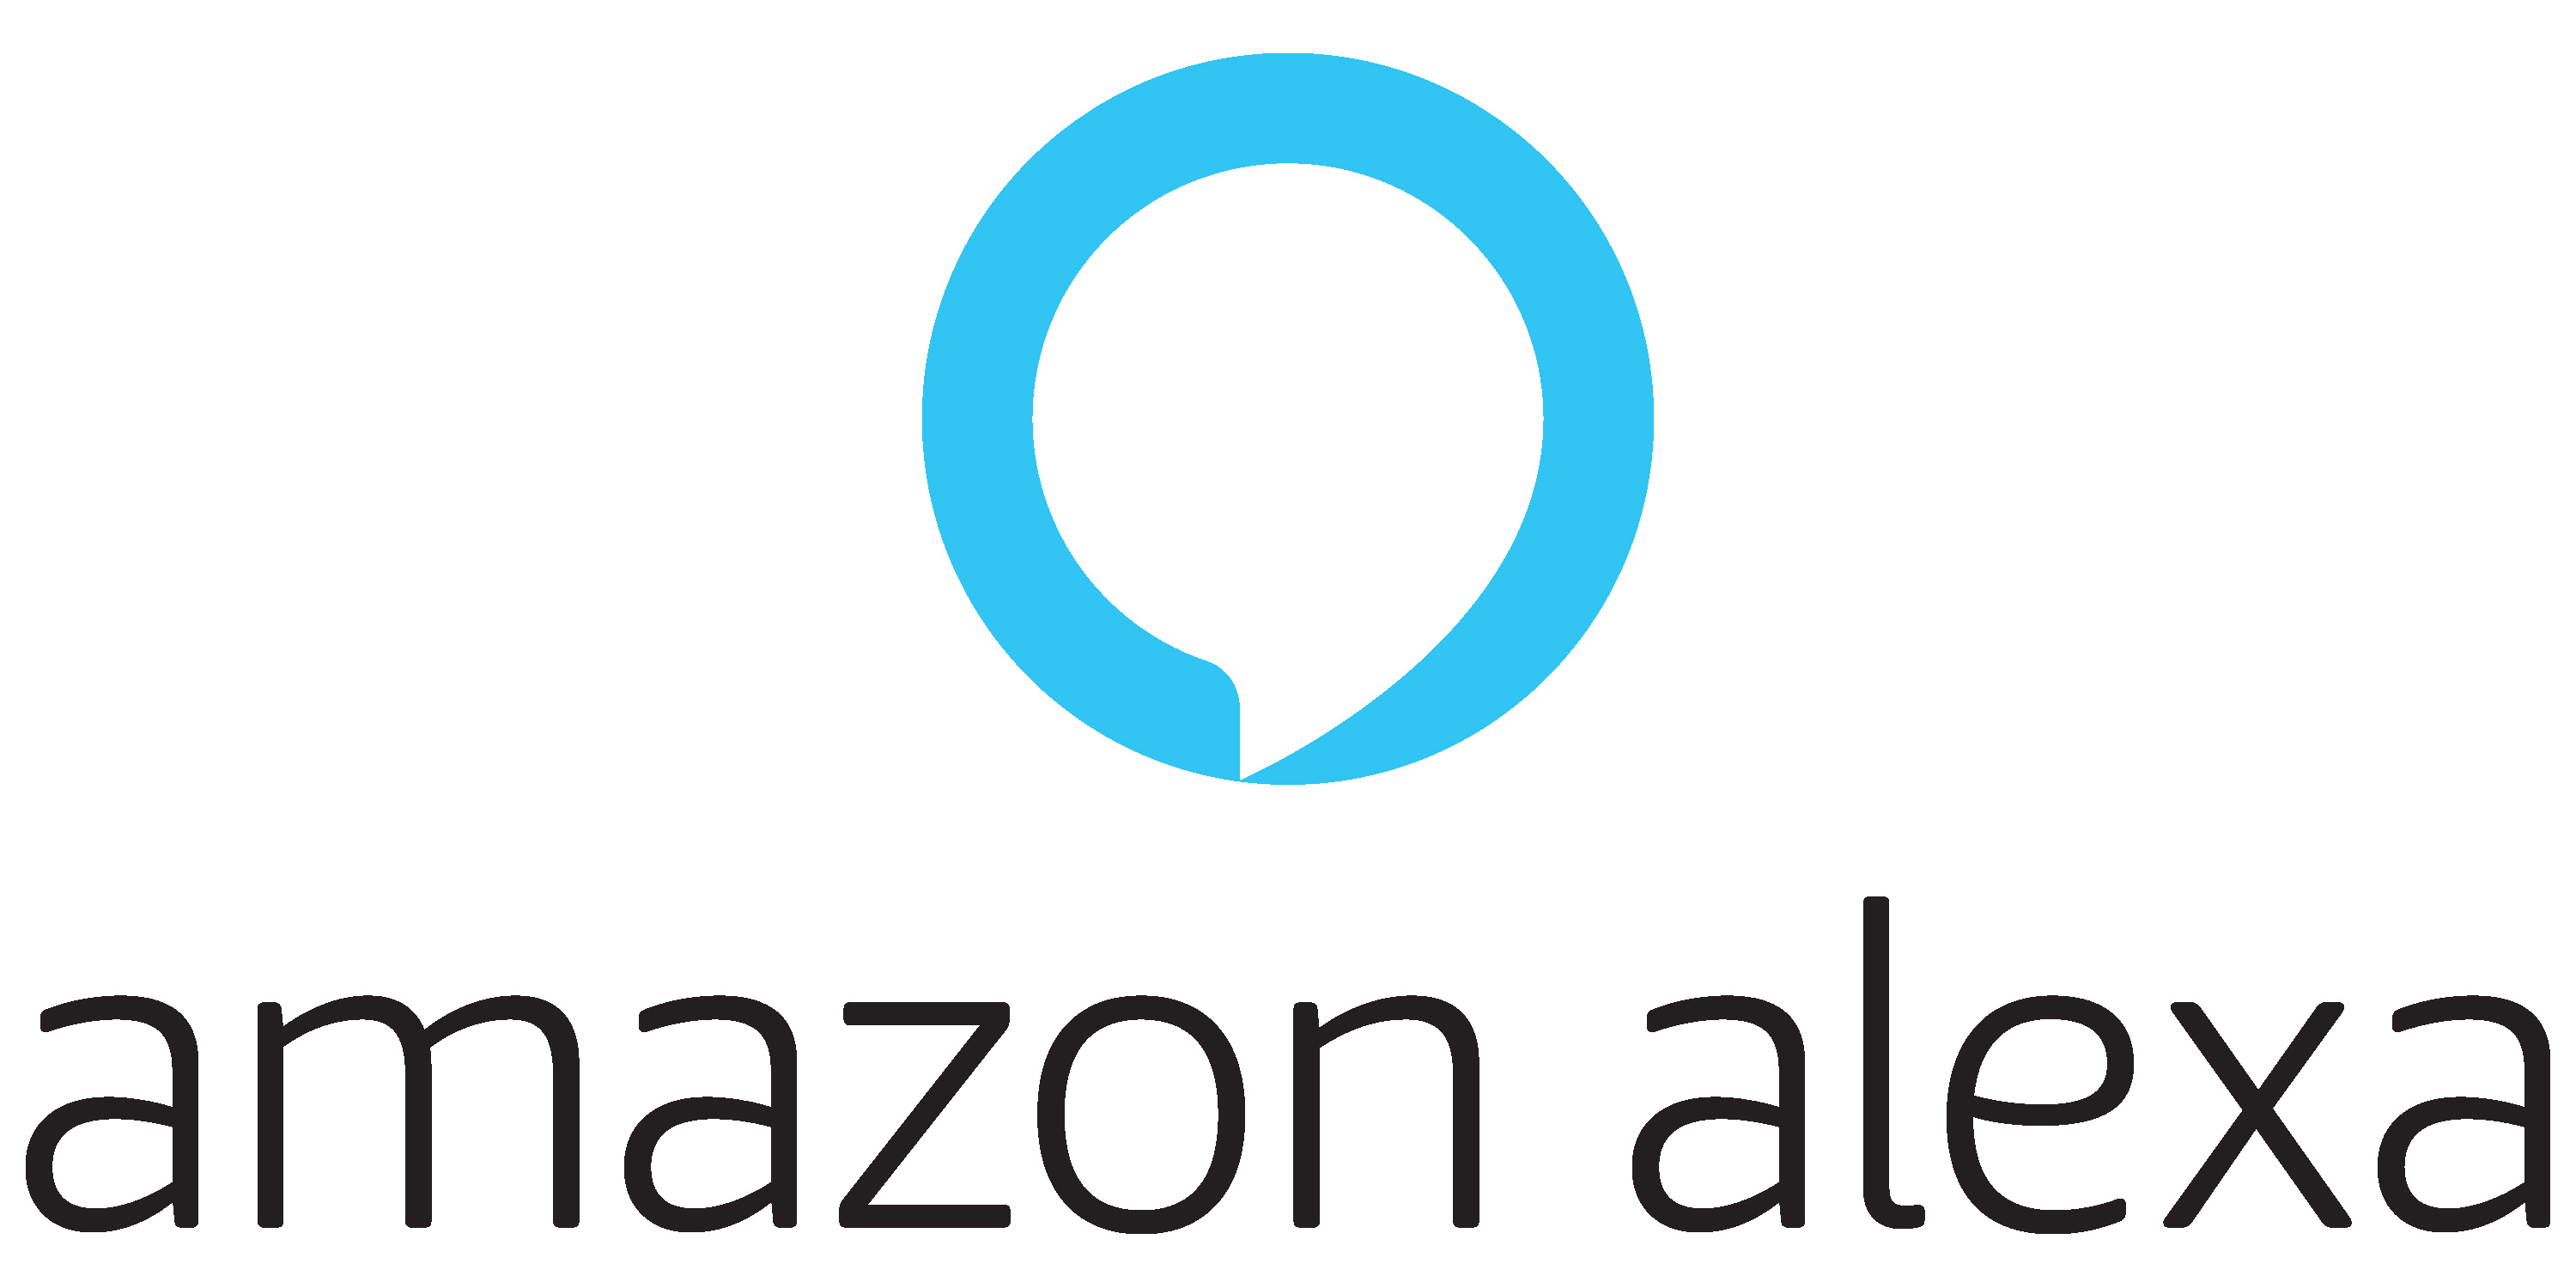 Full Amazon Alexa Voice Control Coming to the Alexa iOS App